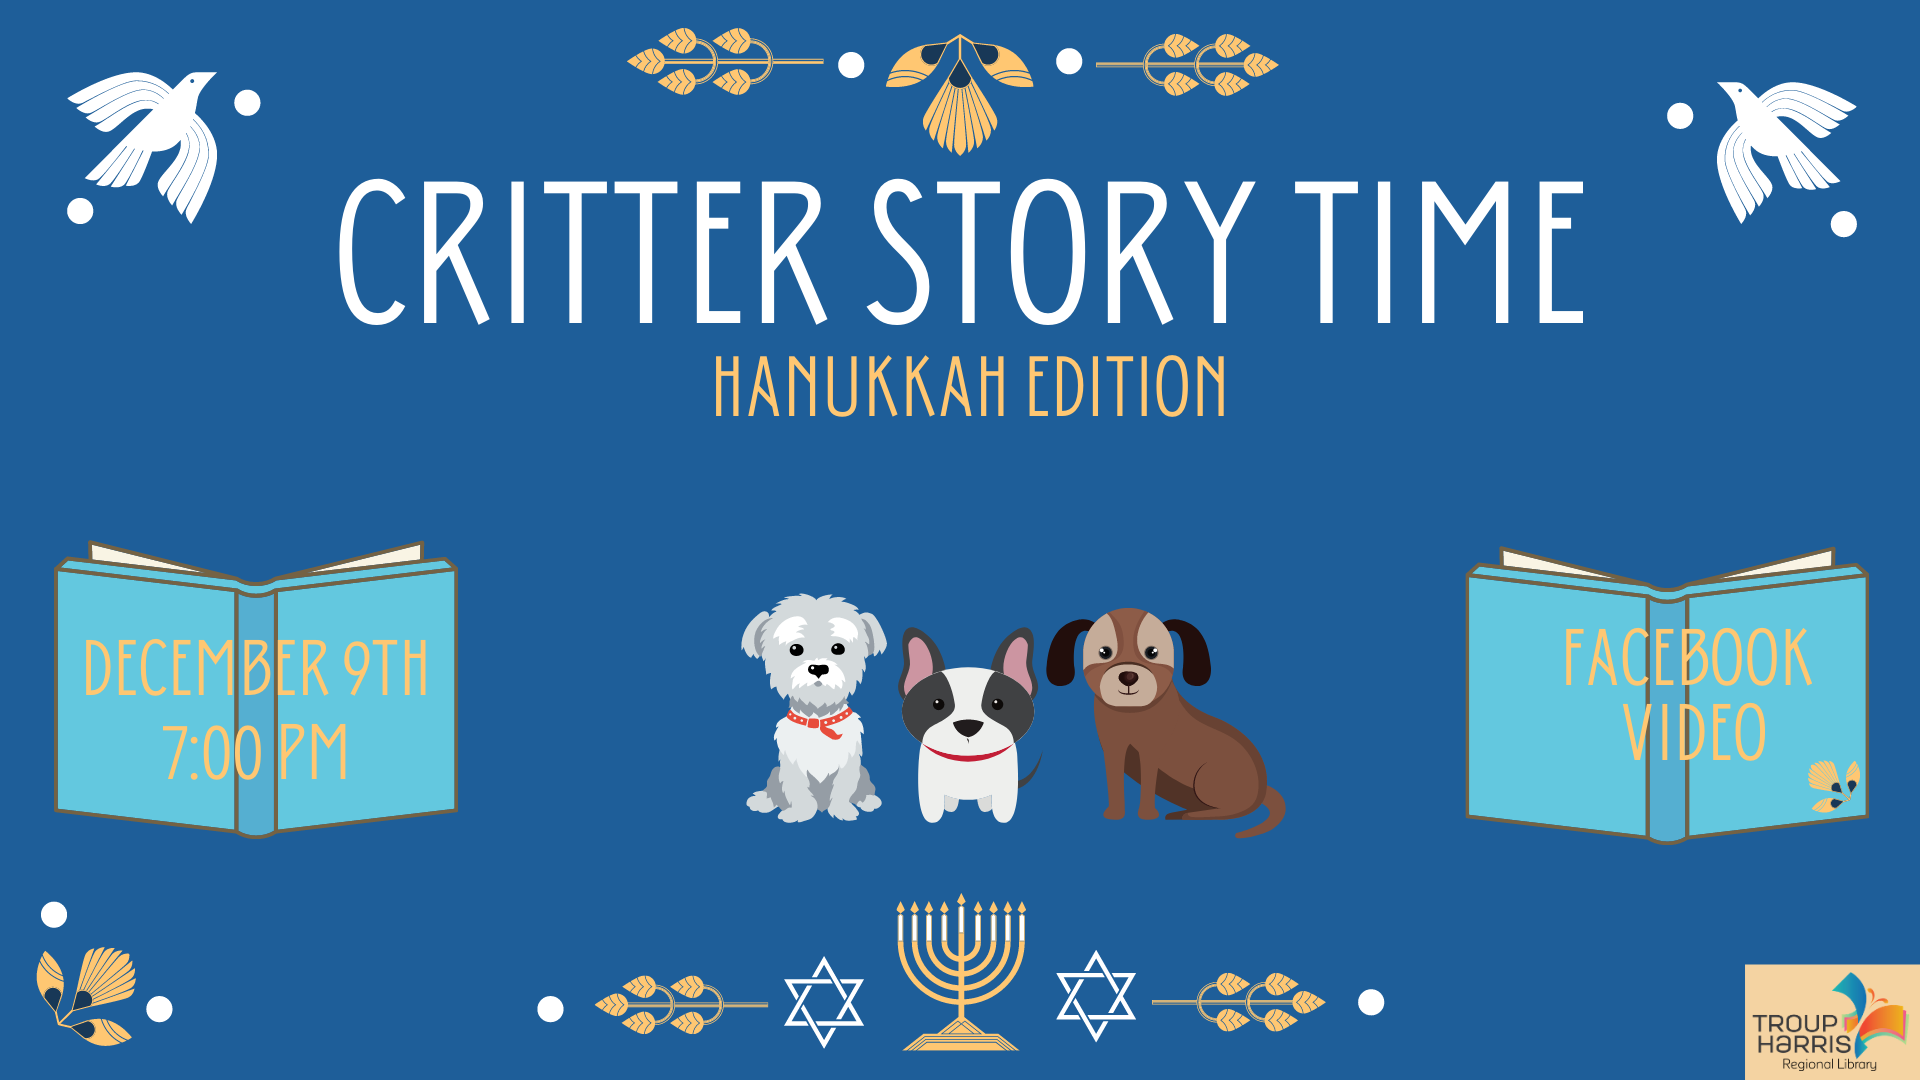 Critter Story Time: Hanukkah Edition. December 9th 7 pm Facebook Video